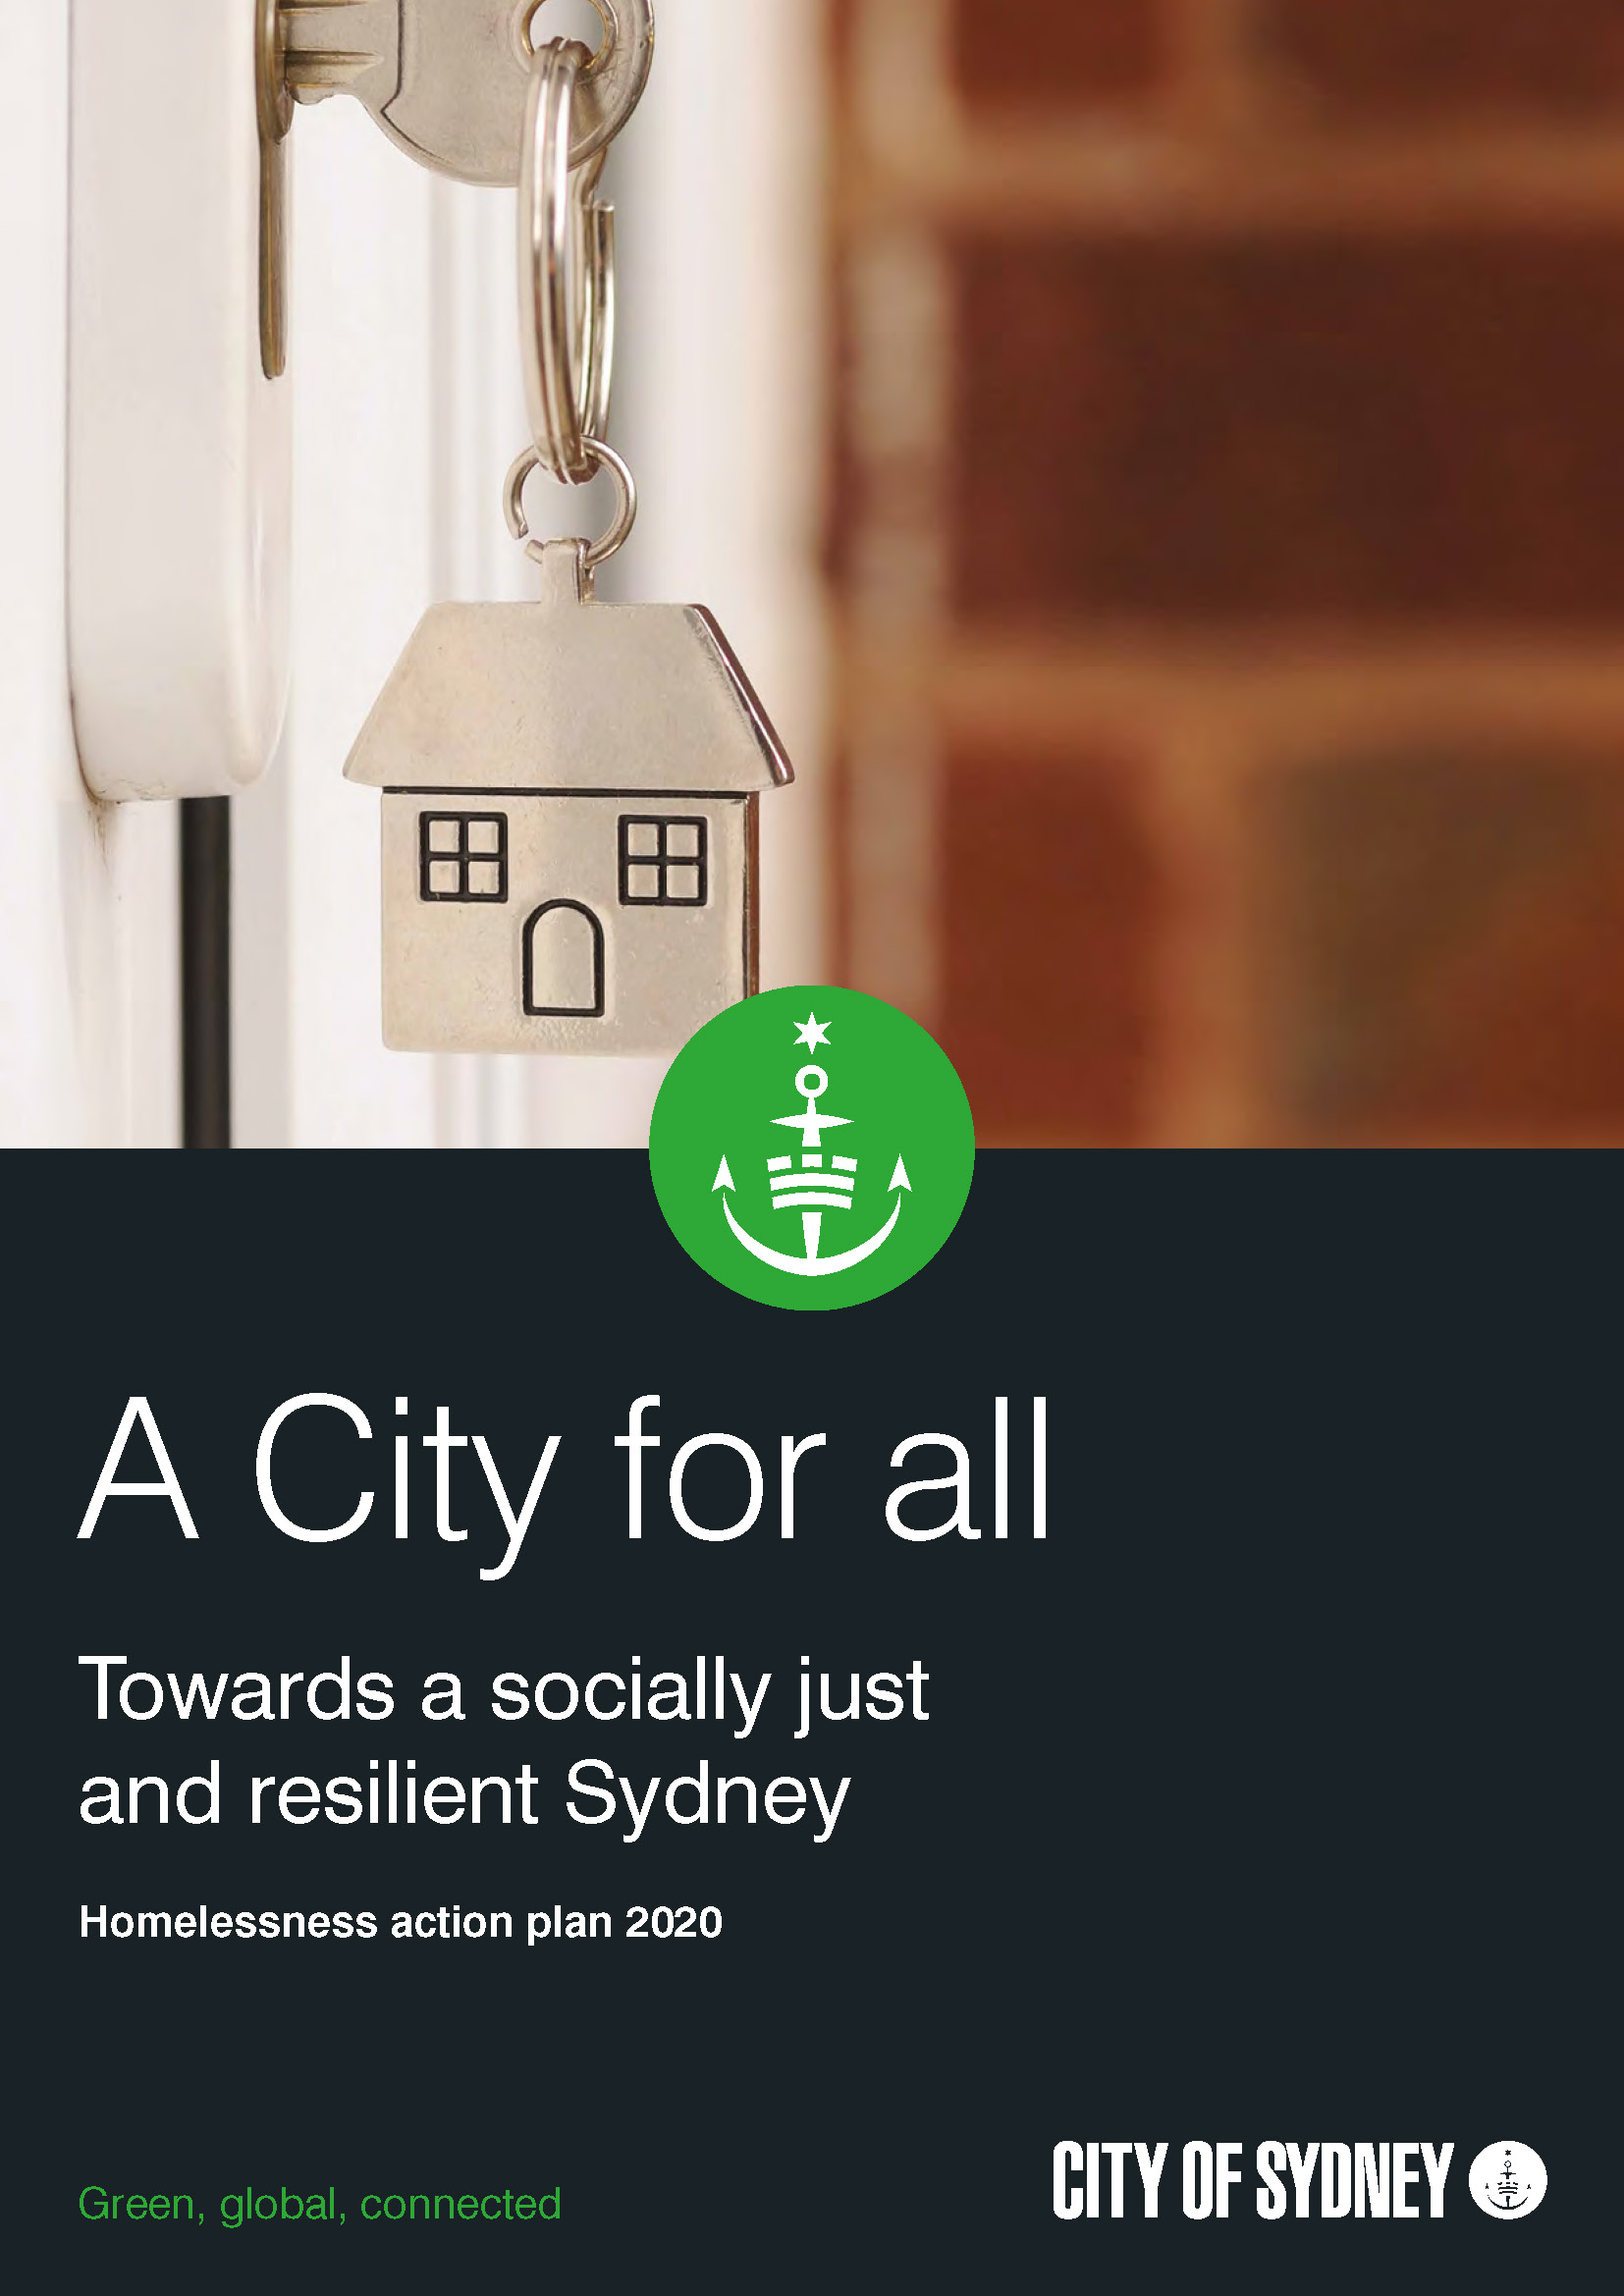 City of Sydney Homelessness Action Plan 2020